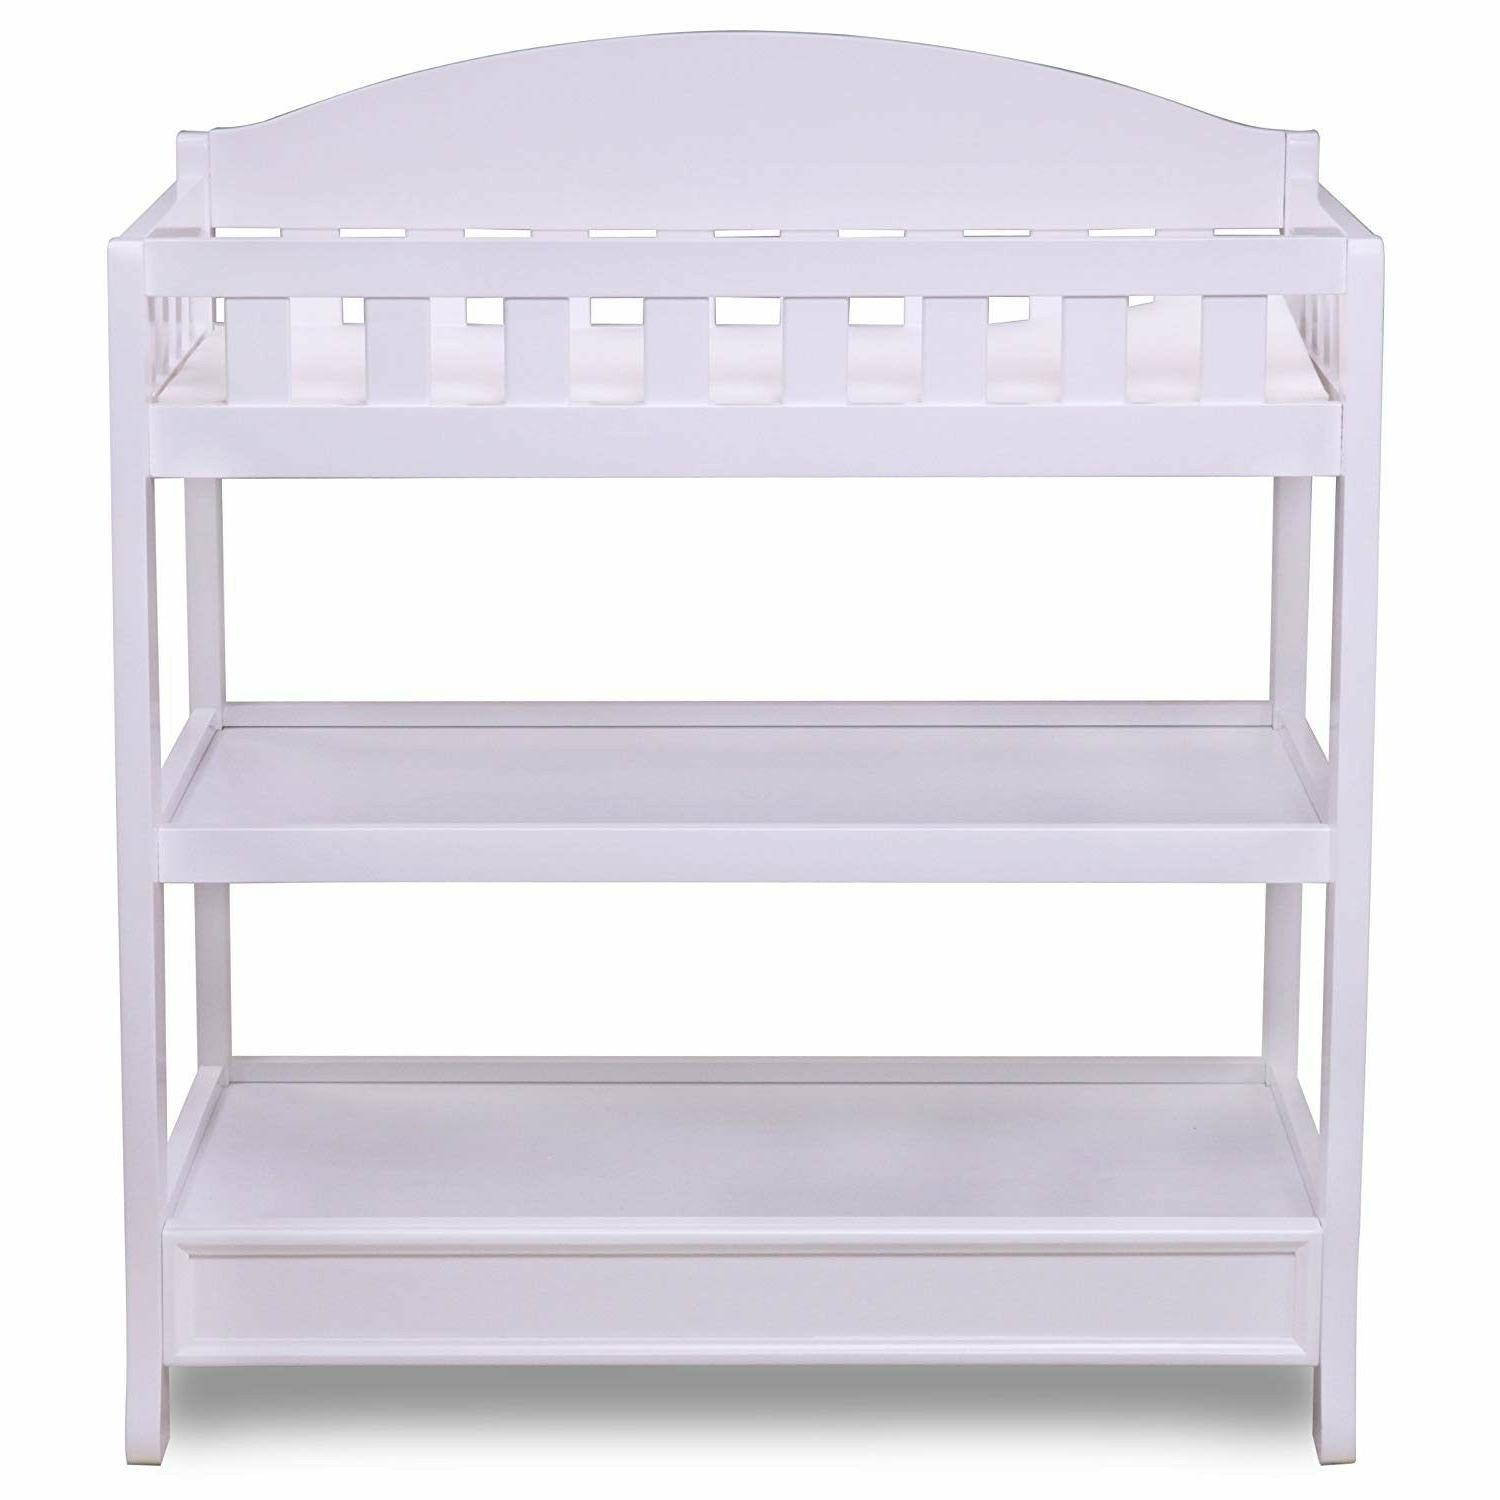 changing table baby kids infant children room